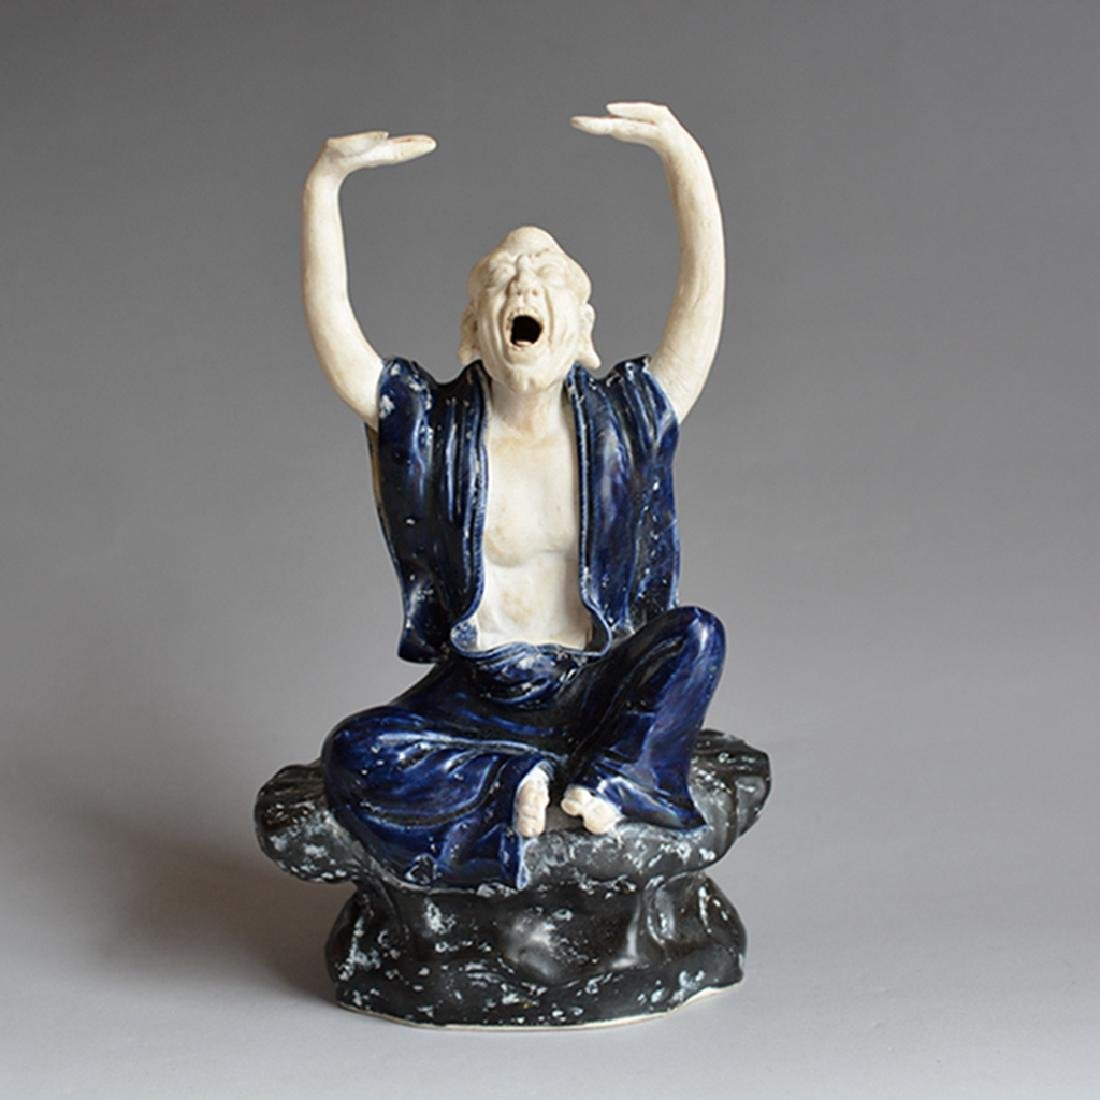 Chinese Porcelain Rohan Statue